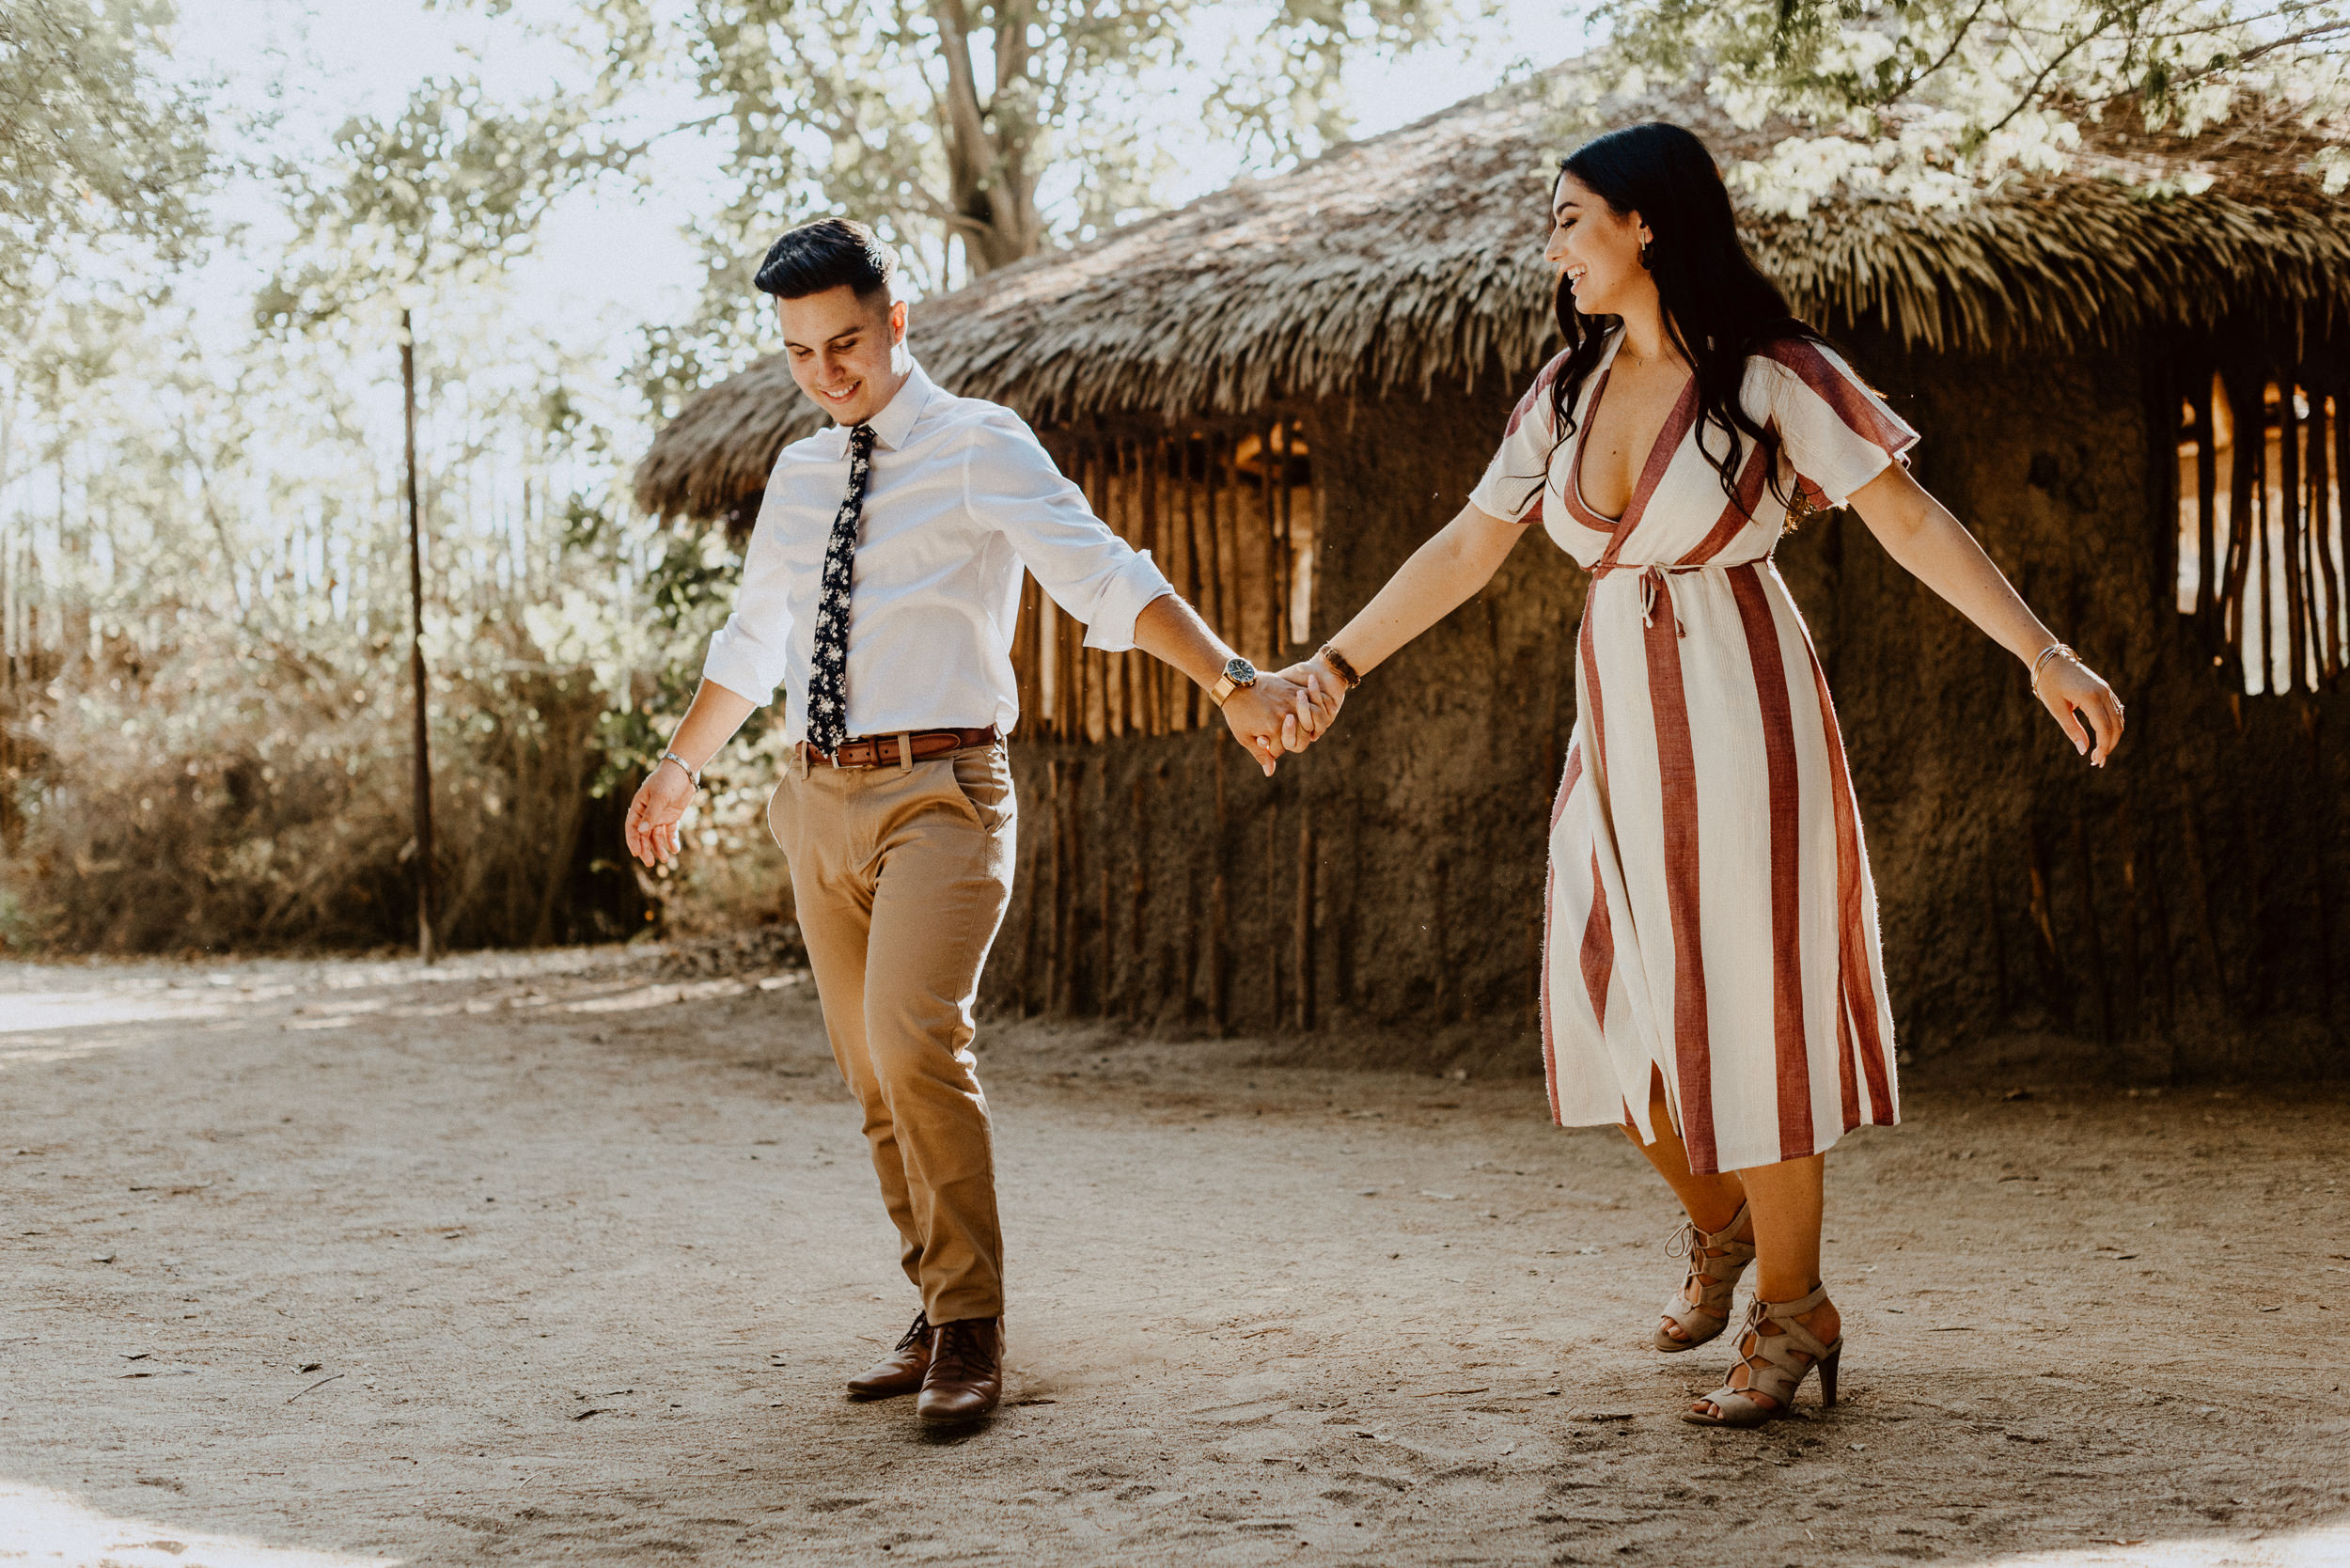 sLindsay + Joel & Friends - The Desert Shootout Elopement at The Living Desert-30.jpg